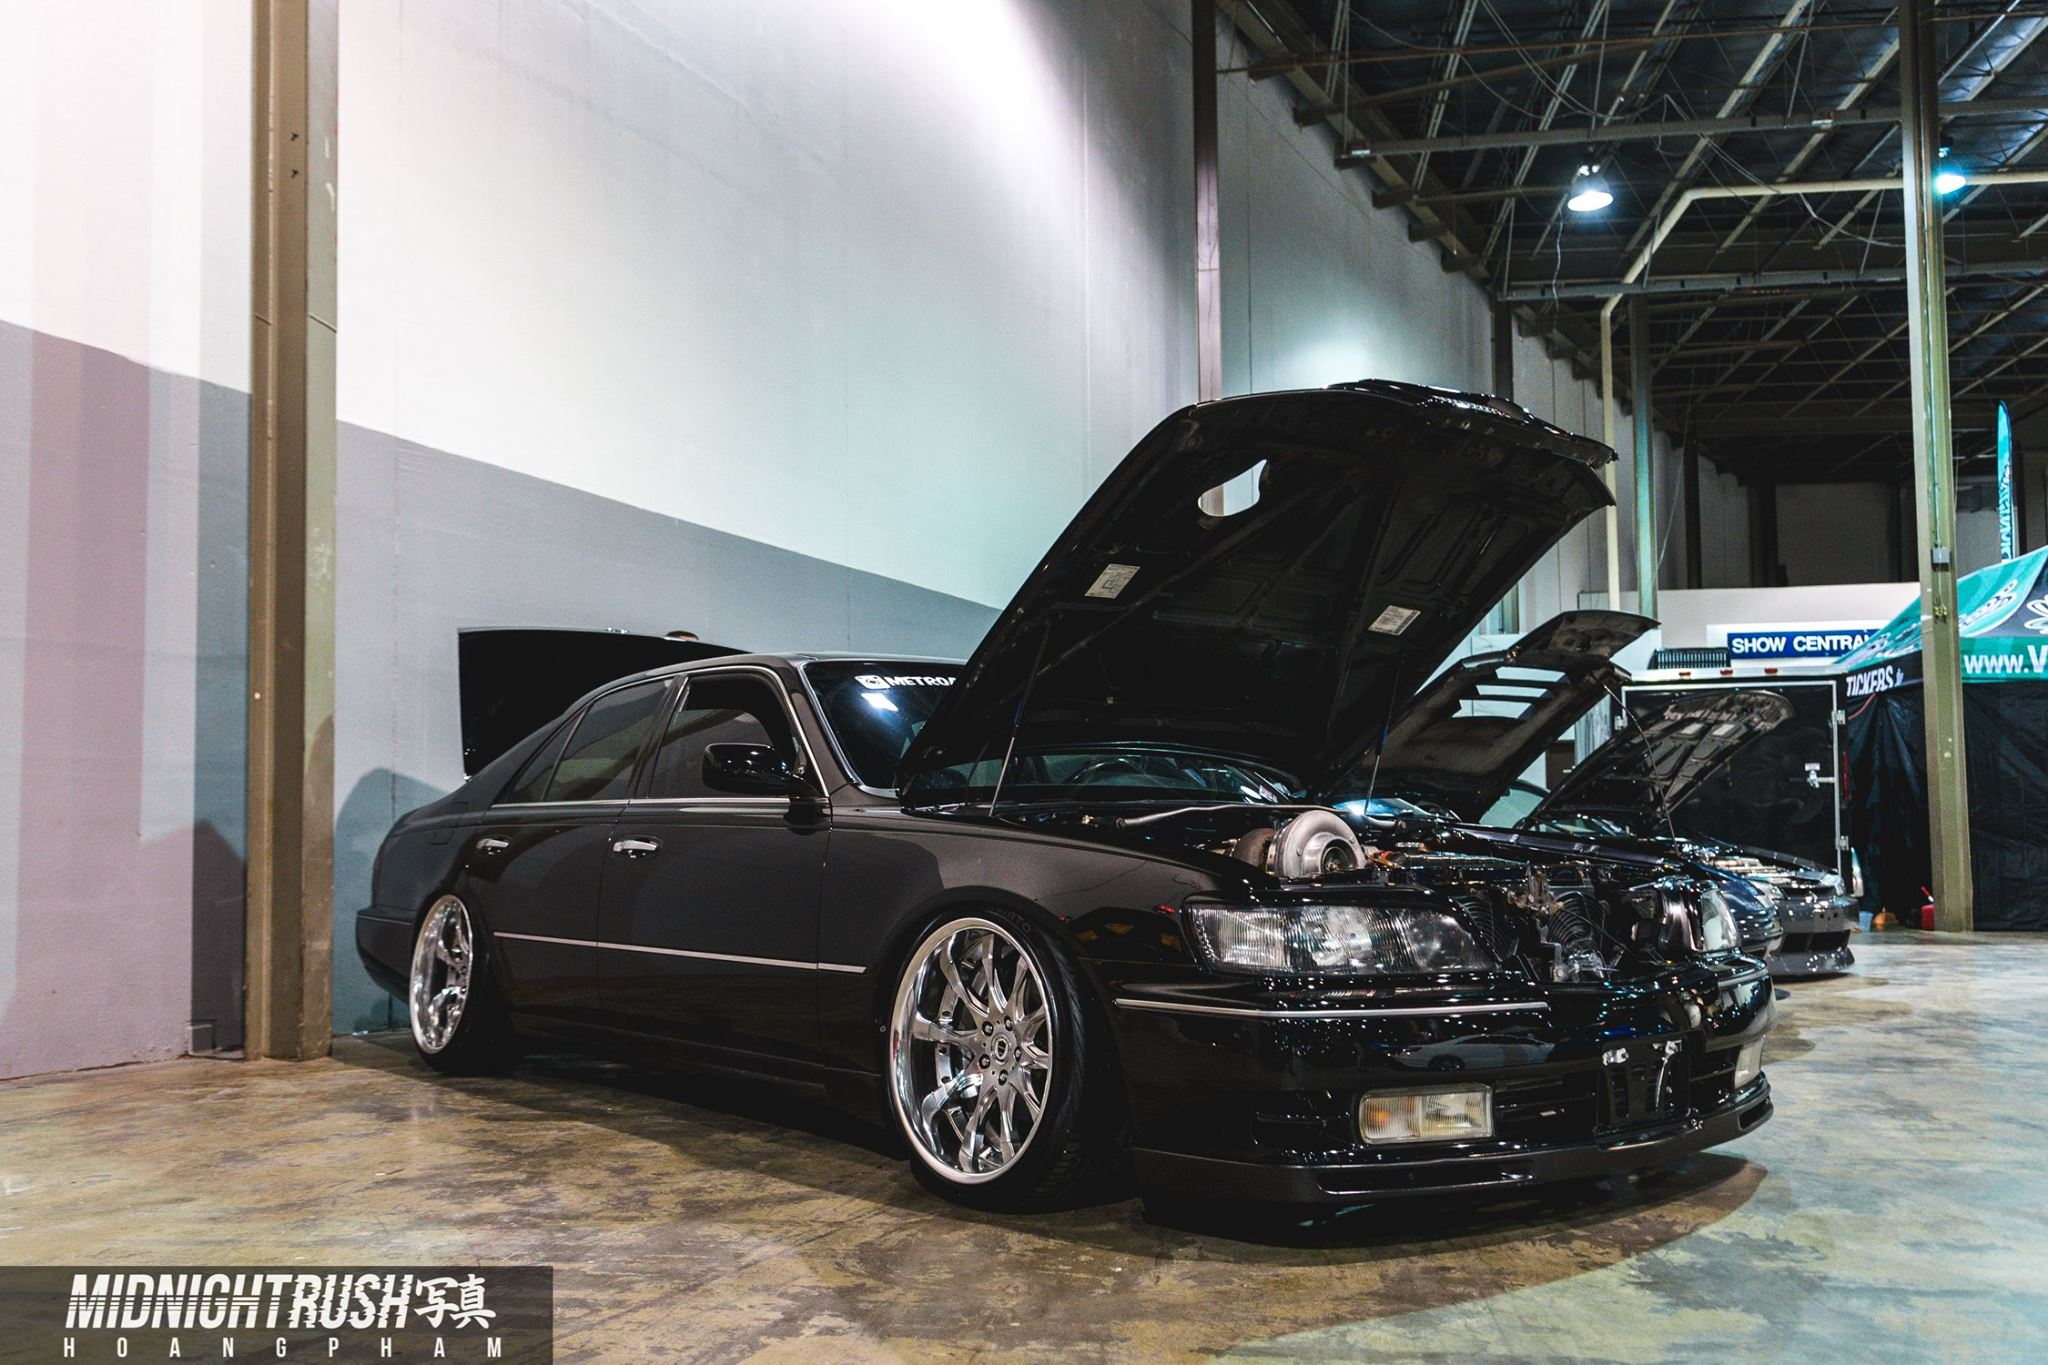 The LQ9 S480 Q45 - …talk about a mouth full. Inside this 1997 Infiniti Q45, we stuffed a 6.0 liter Chevy and strapped on a Borg Warner S480. We have not seen another one this cleanly done before. #humblebragandproud